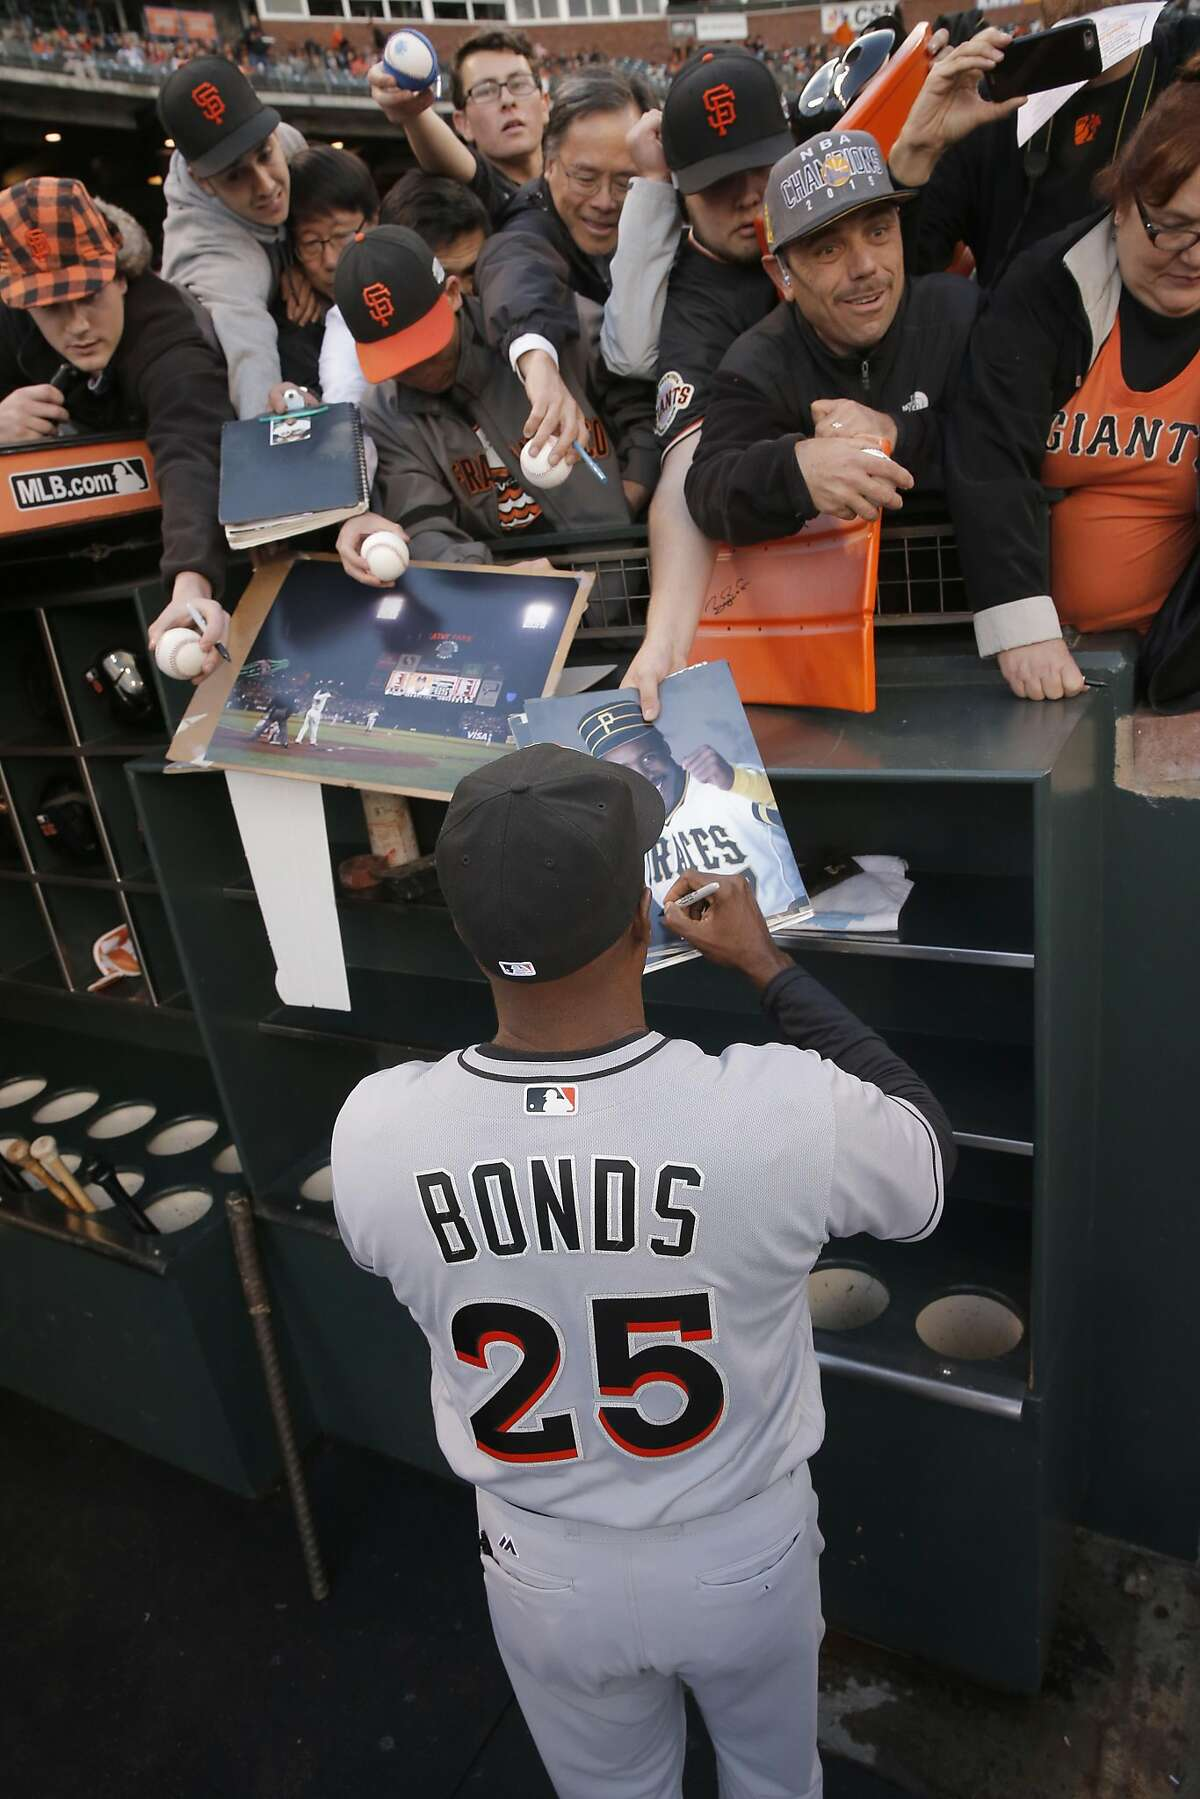 Former San Francisco Giants' slugger Barry Bonds, signing autographs for fans, is now the hitting coach for the Florida Marlins returns to AT&T Park in a major league uniform for the first time since August of 1992, on Fri. April 22, 2016, in San Francisco, California.